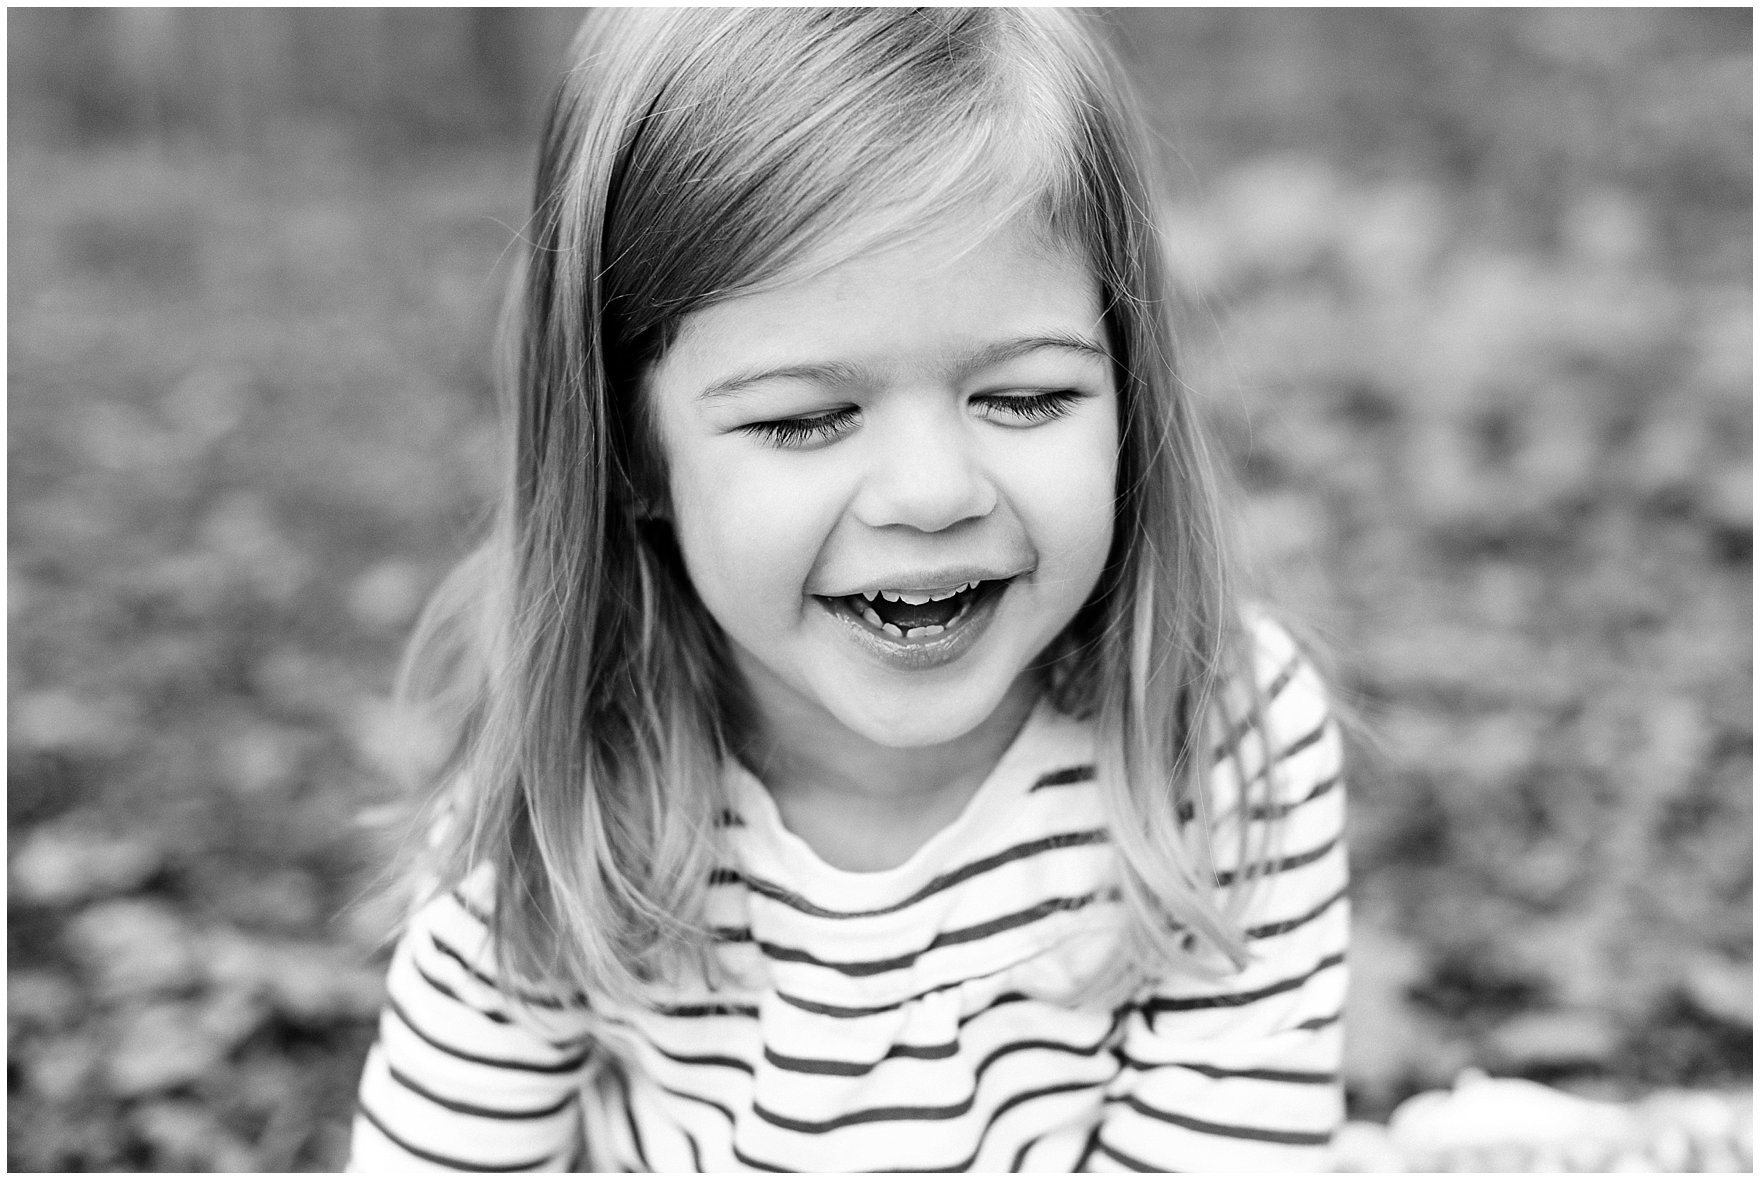 A young girl laughs during a Morton Arboretum fall family session.